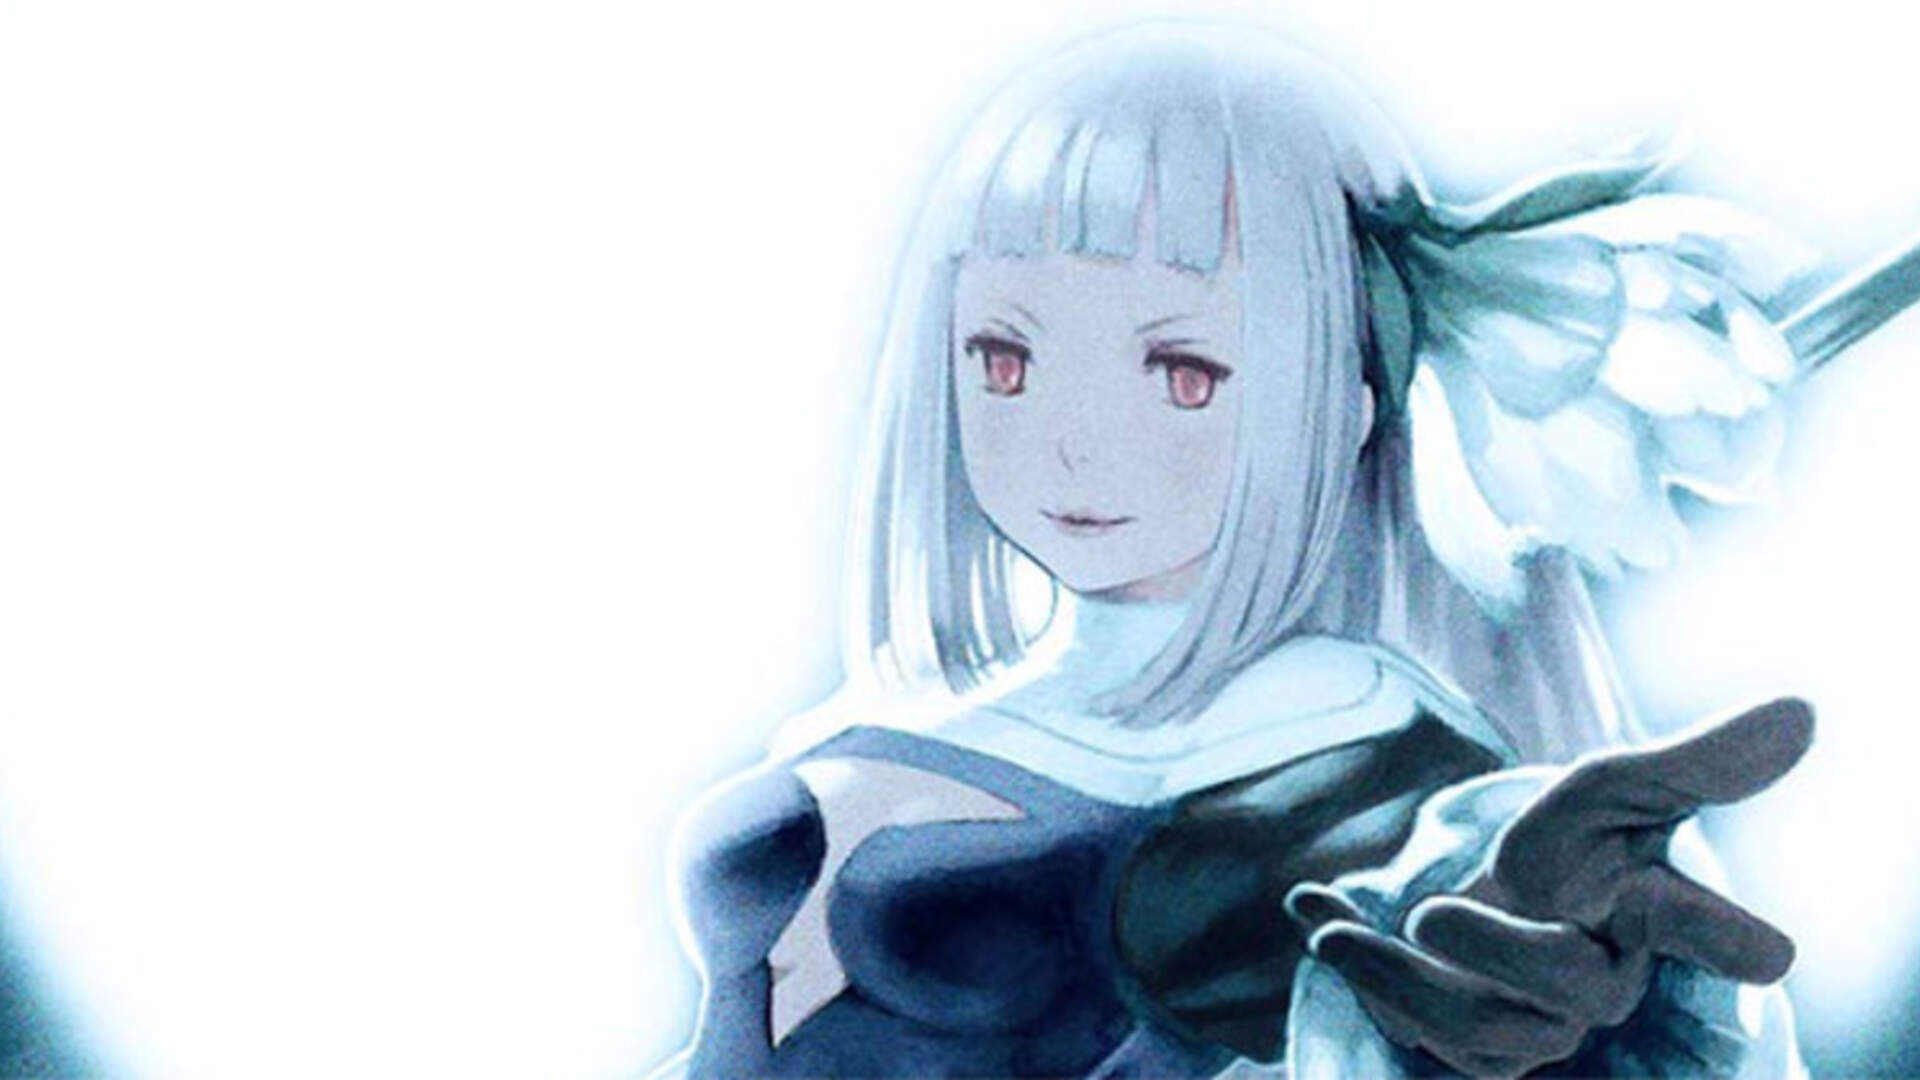 TGS: Bravely Second Builds on the Series' Unique Traits